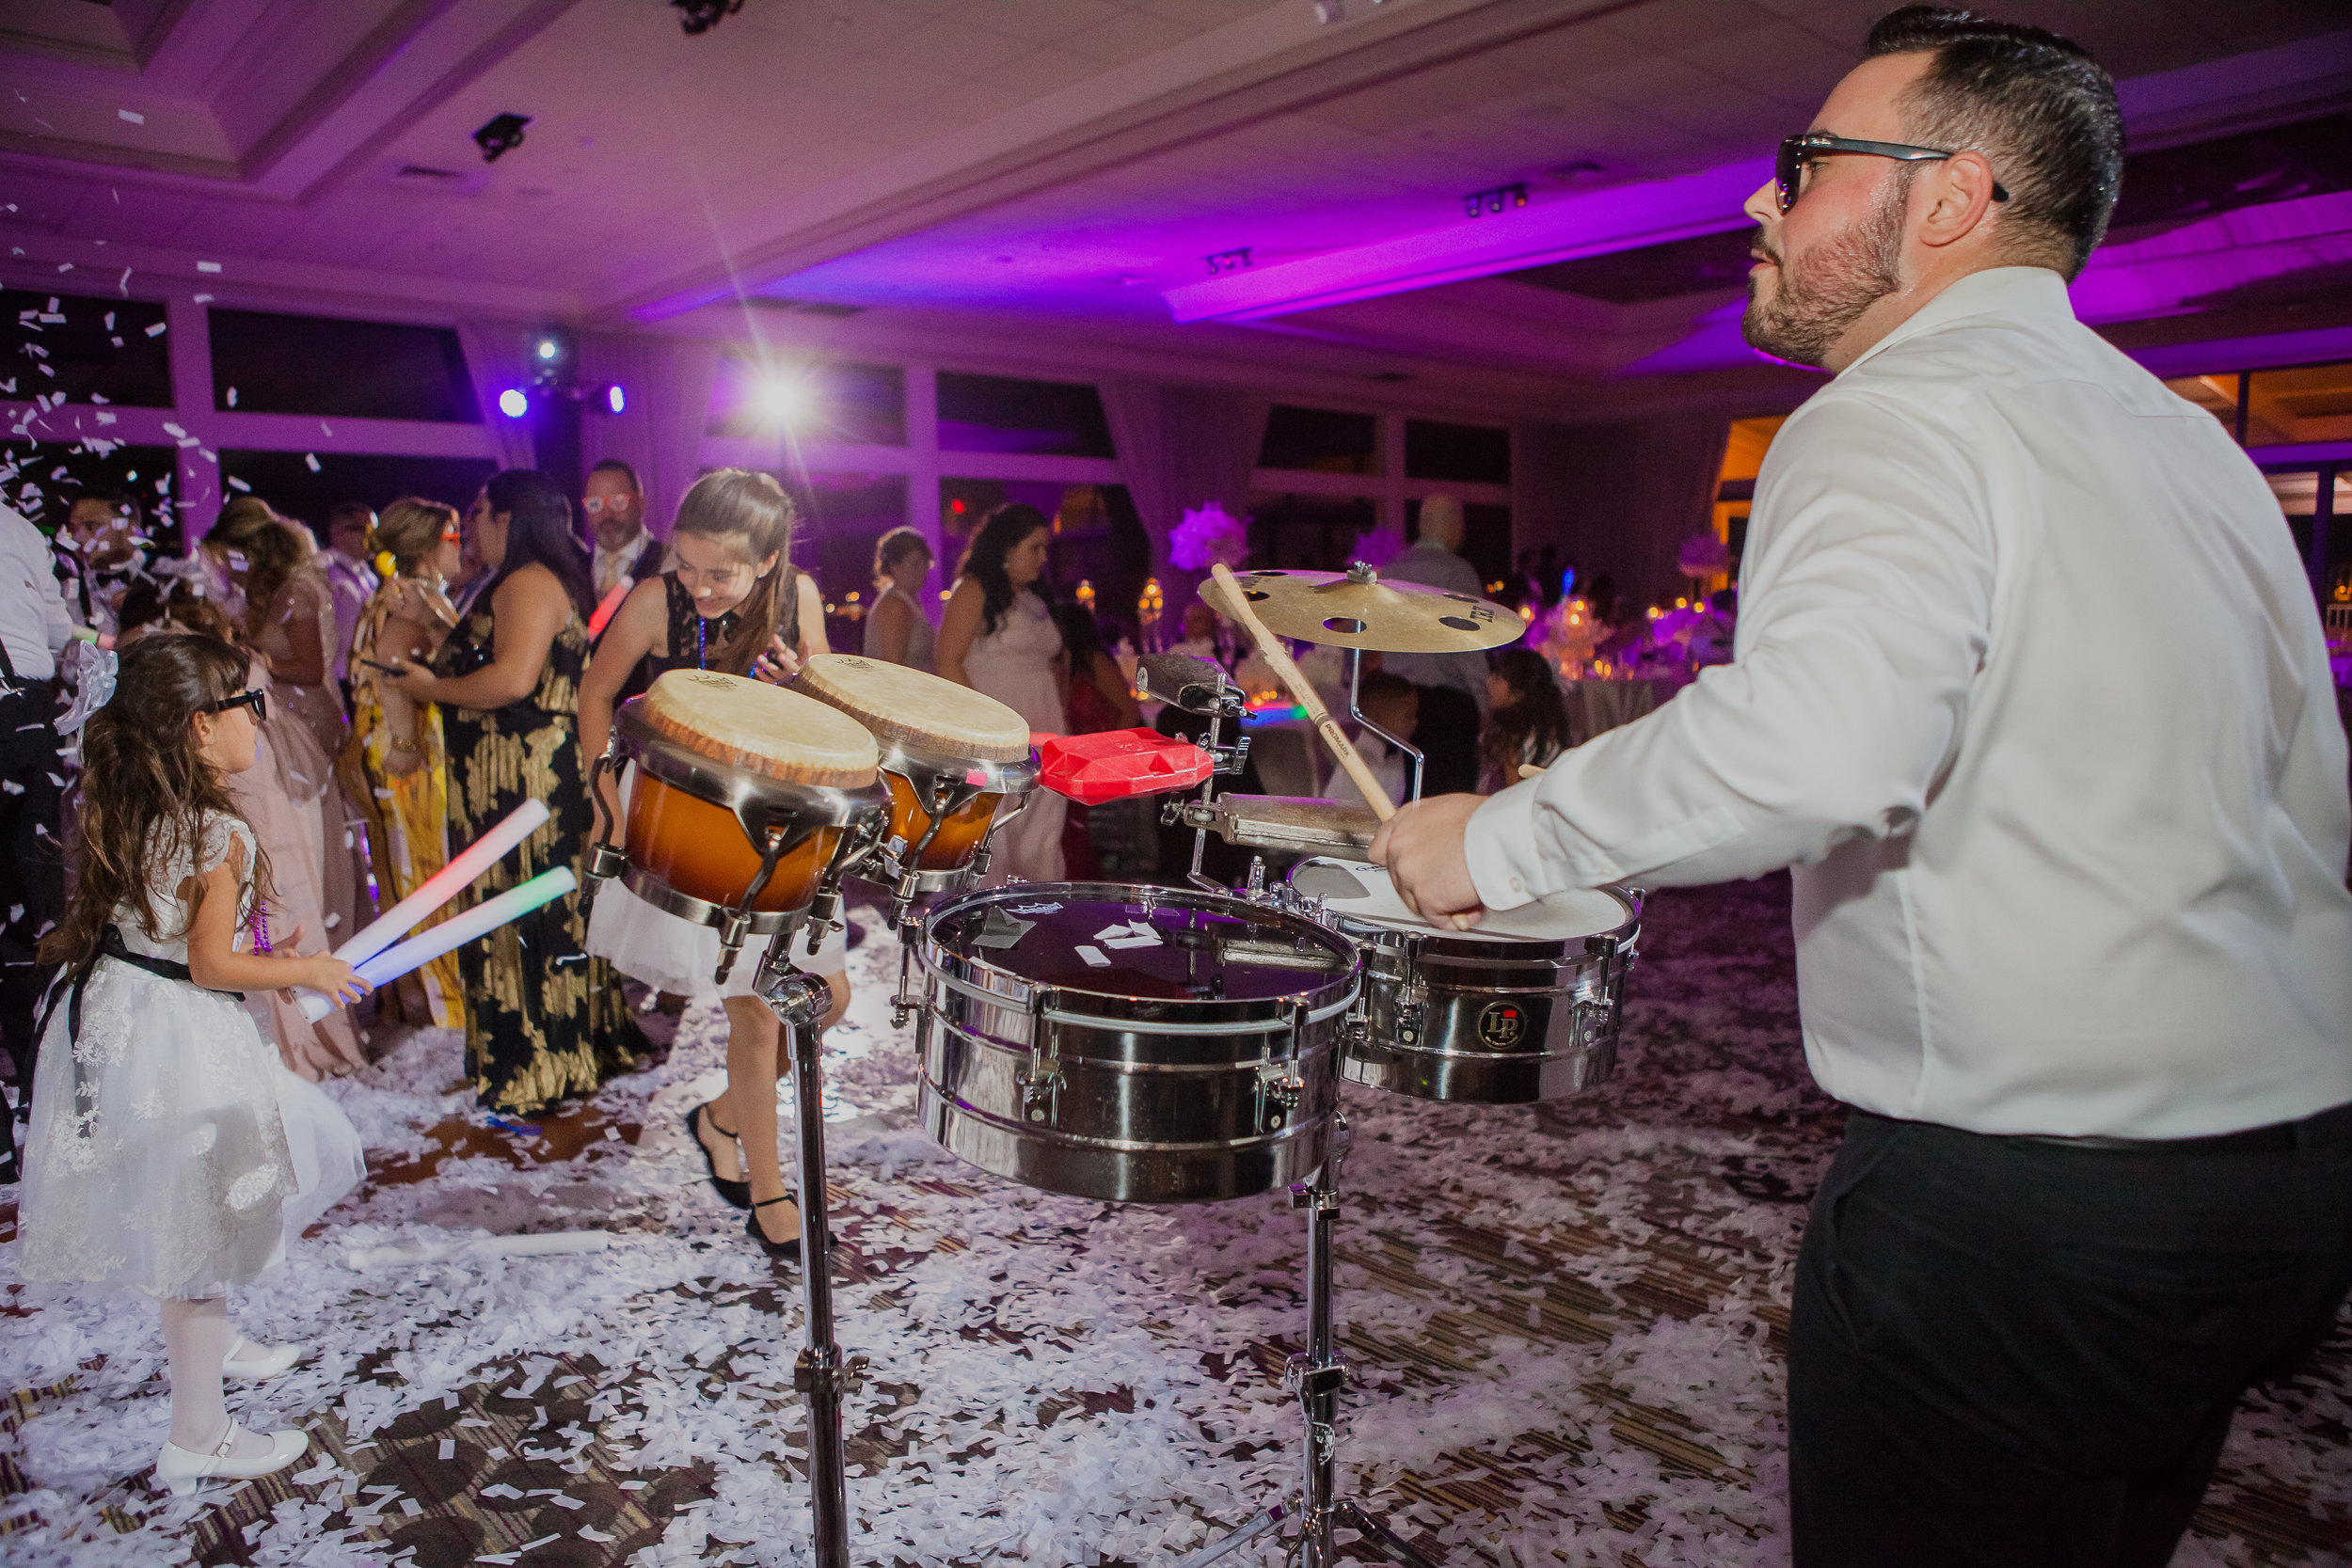 Entertainment & Live Musicians - Having performed at over 1000 Weddings Event Factor also provides some of the best Musicians and Entertainers in South Florida. From a String Duo or Trio for your Ceremony, to a Spanish Guitarists, Saxophone Player, or Electric Violinists for your Cocktail Hour, to super energetic Percussionist to play alongside our Top Tier DJS during the dance portion of your Reception. Event Factors Entertainment department will pair you with the right entertainment for your special event.